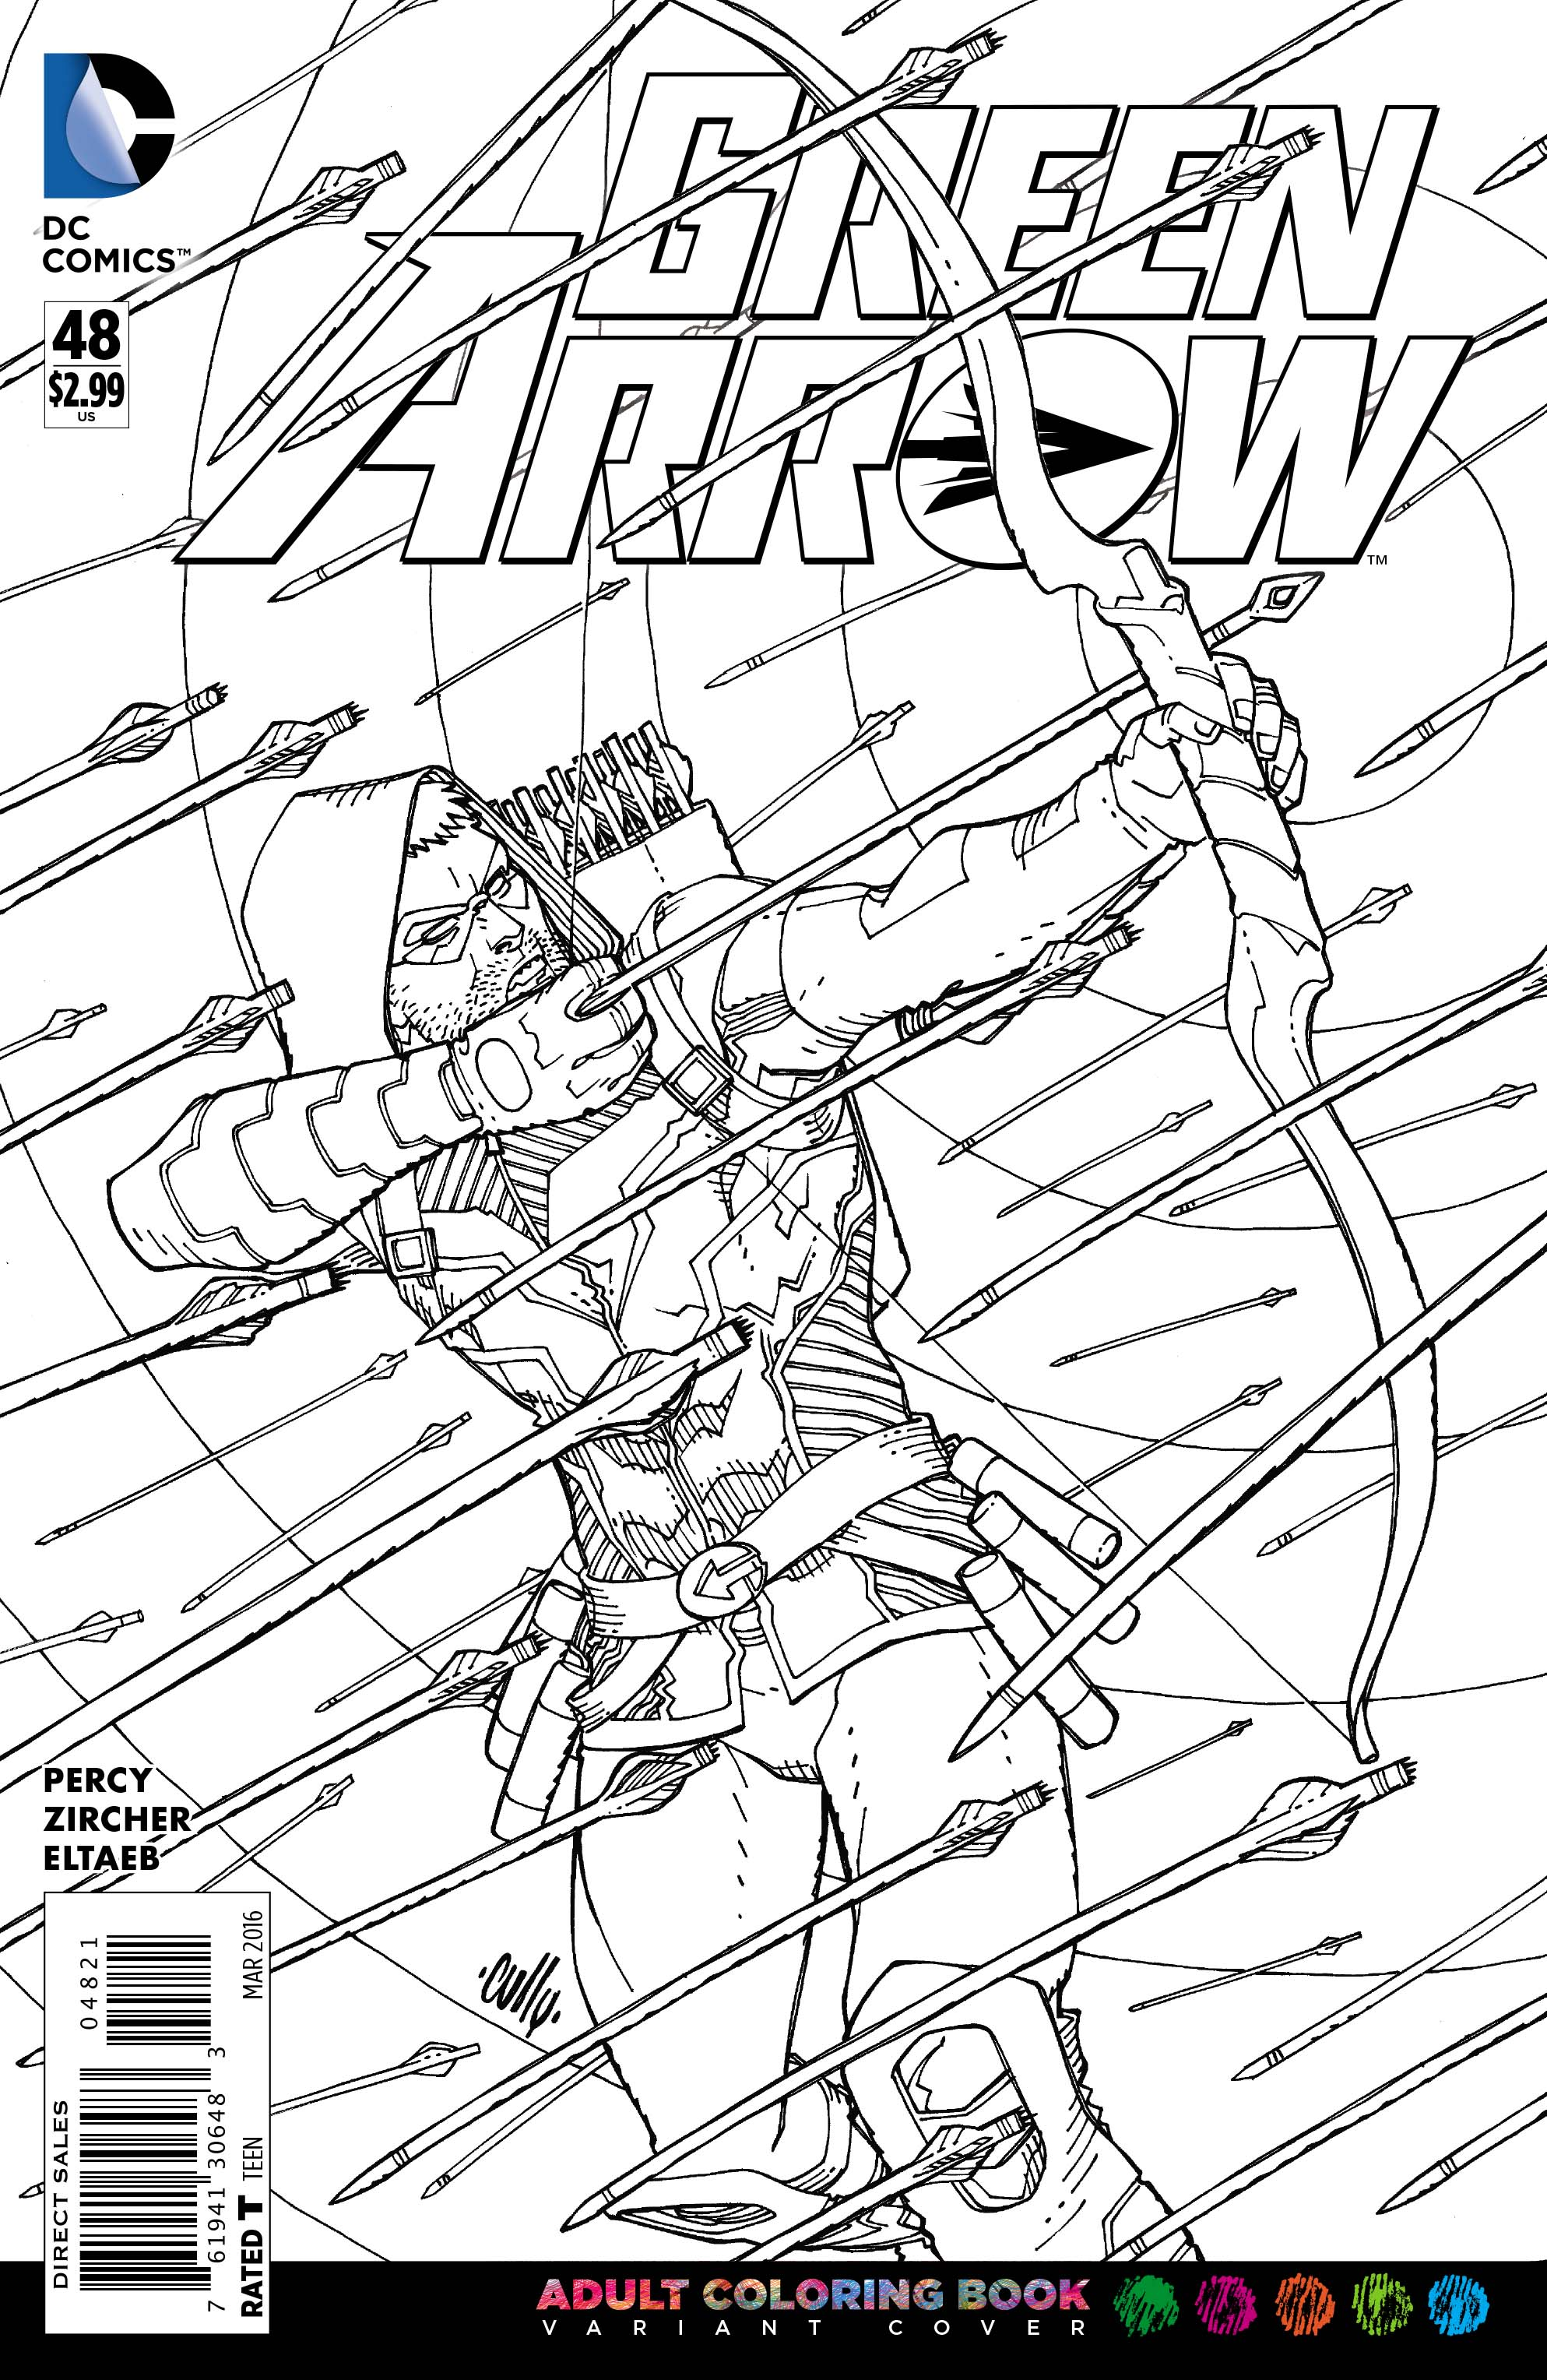 Test Your Coloring With DC Comics Adult Coloring Book Variant Covers ...